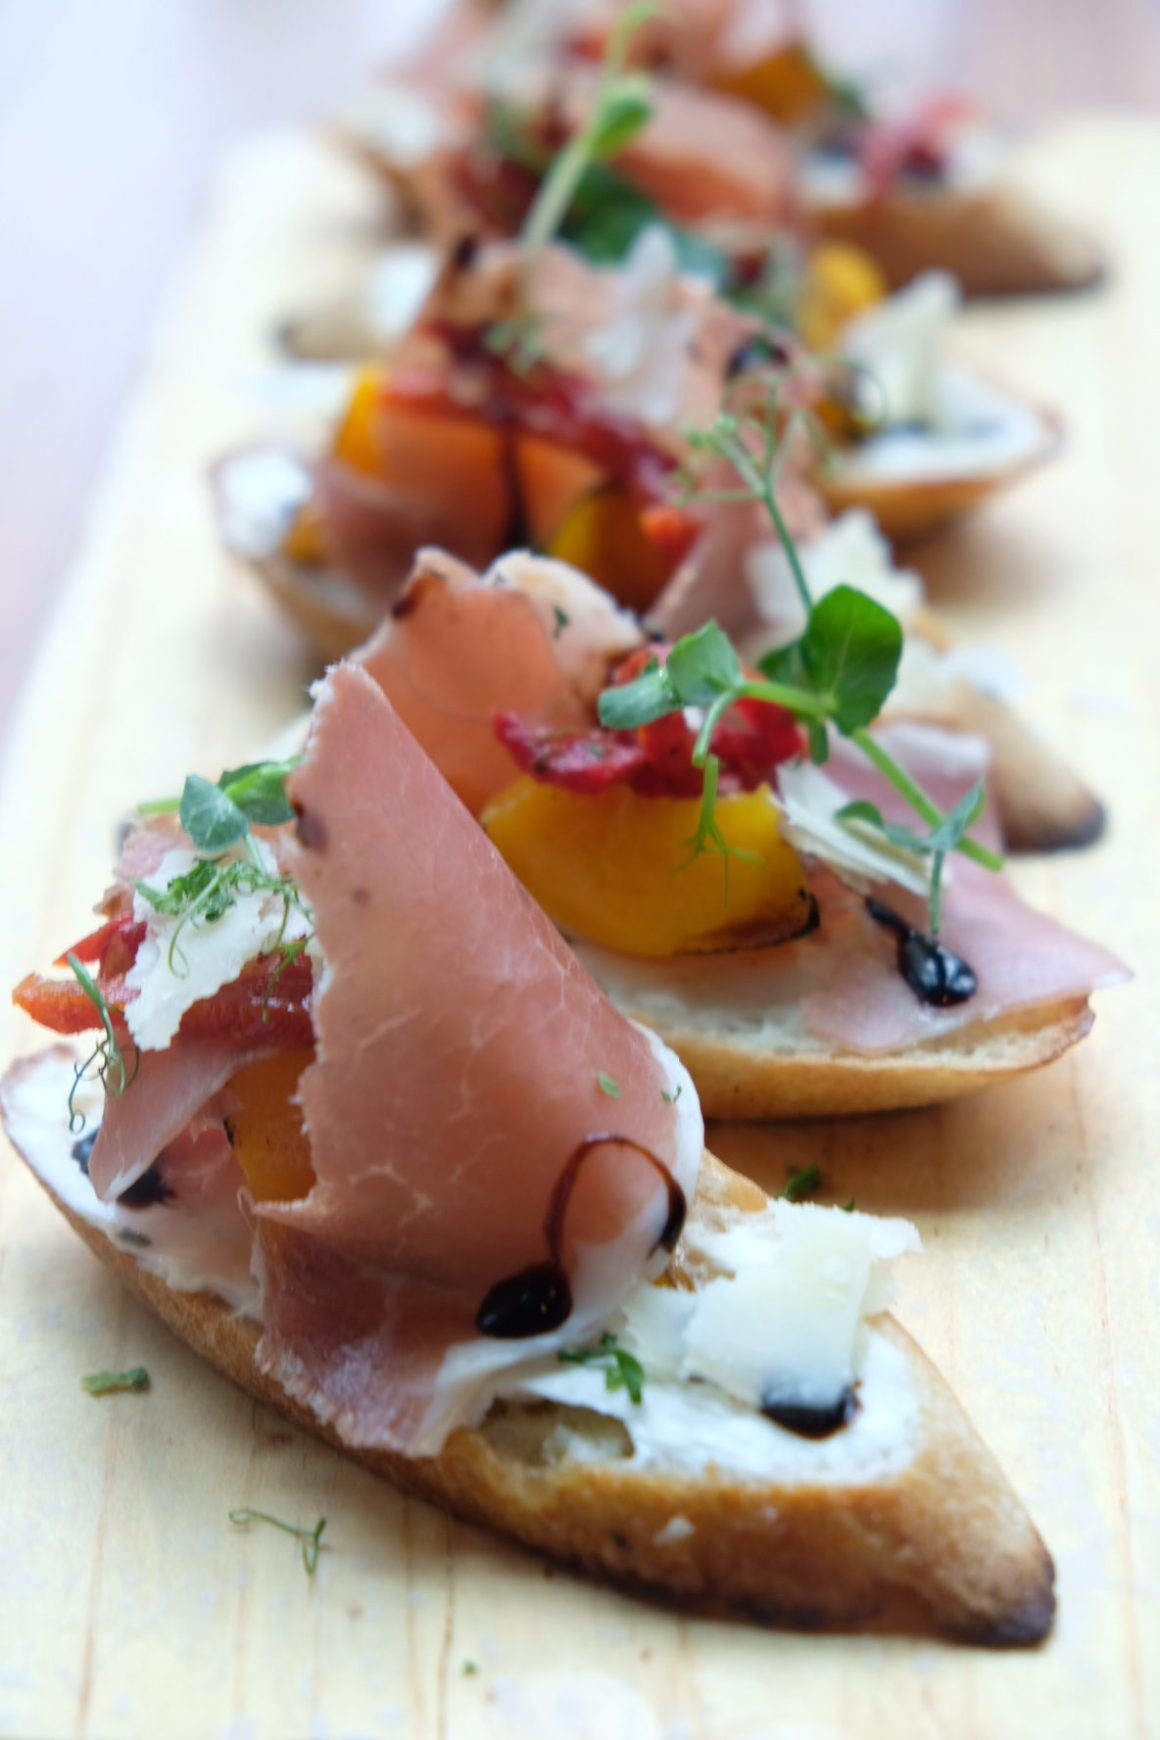 Supply & Demand Orchardgateway New Menu - Peach and Parma Ham Crostini ($14)